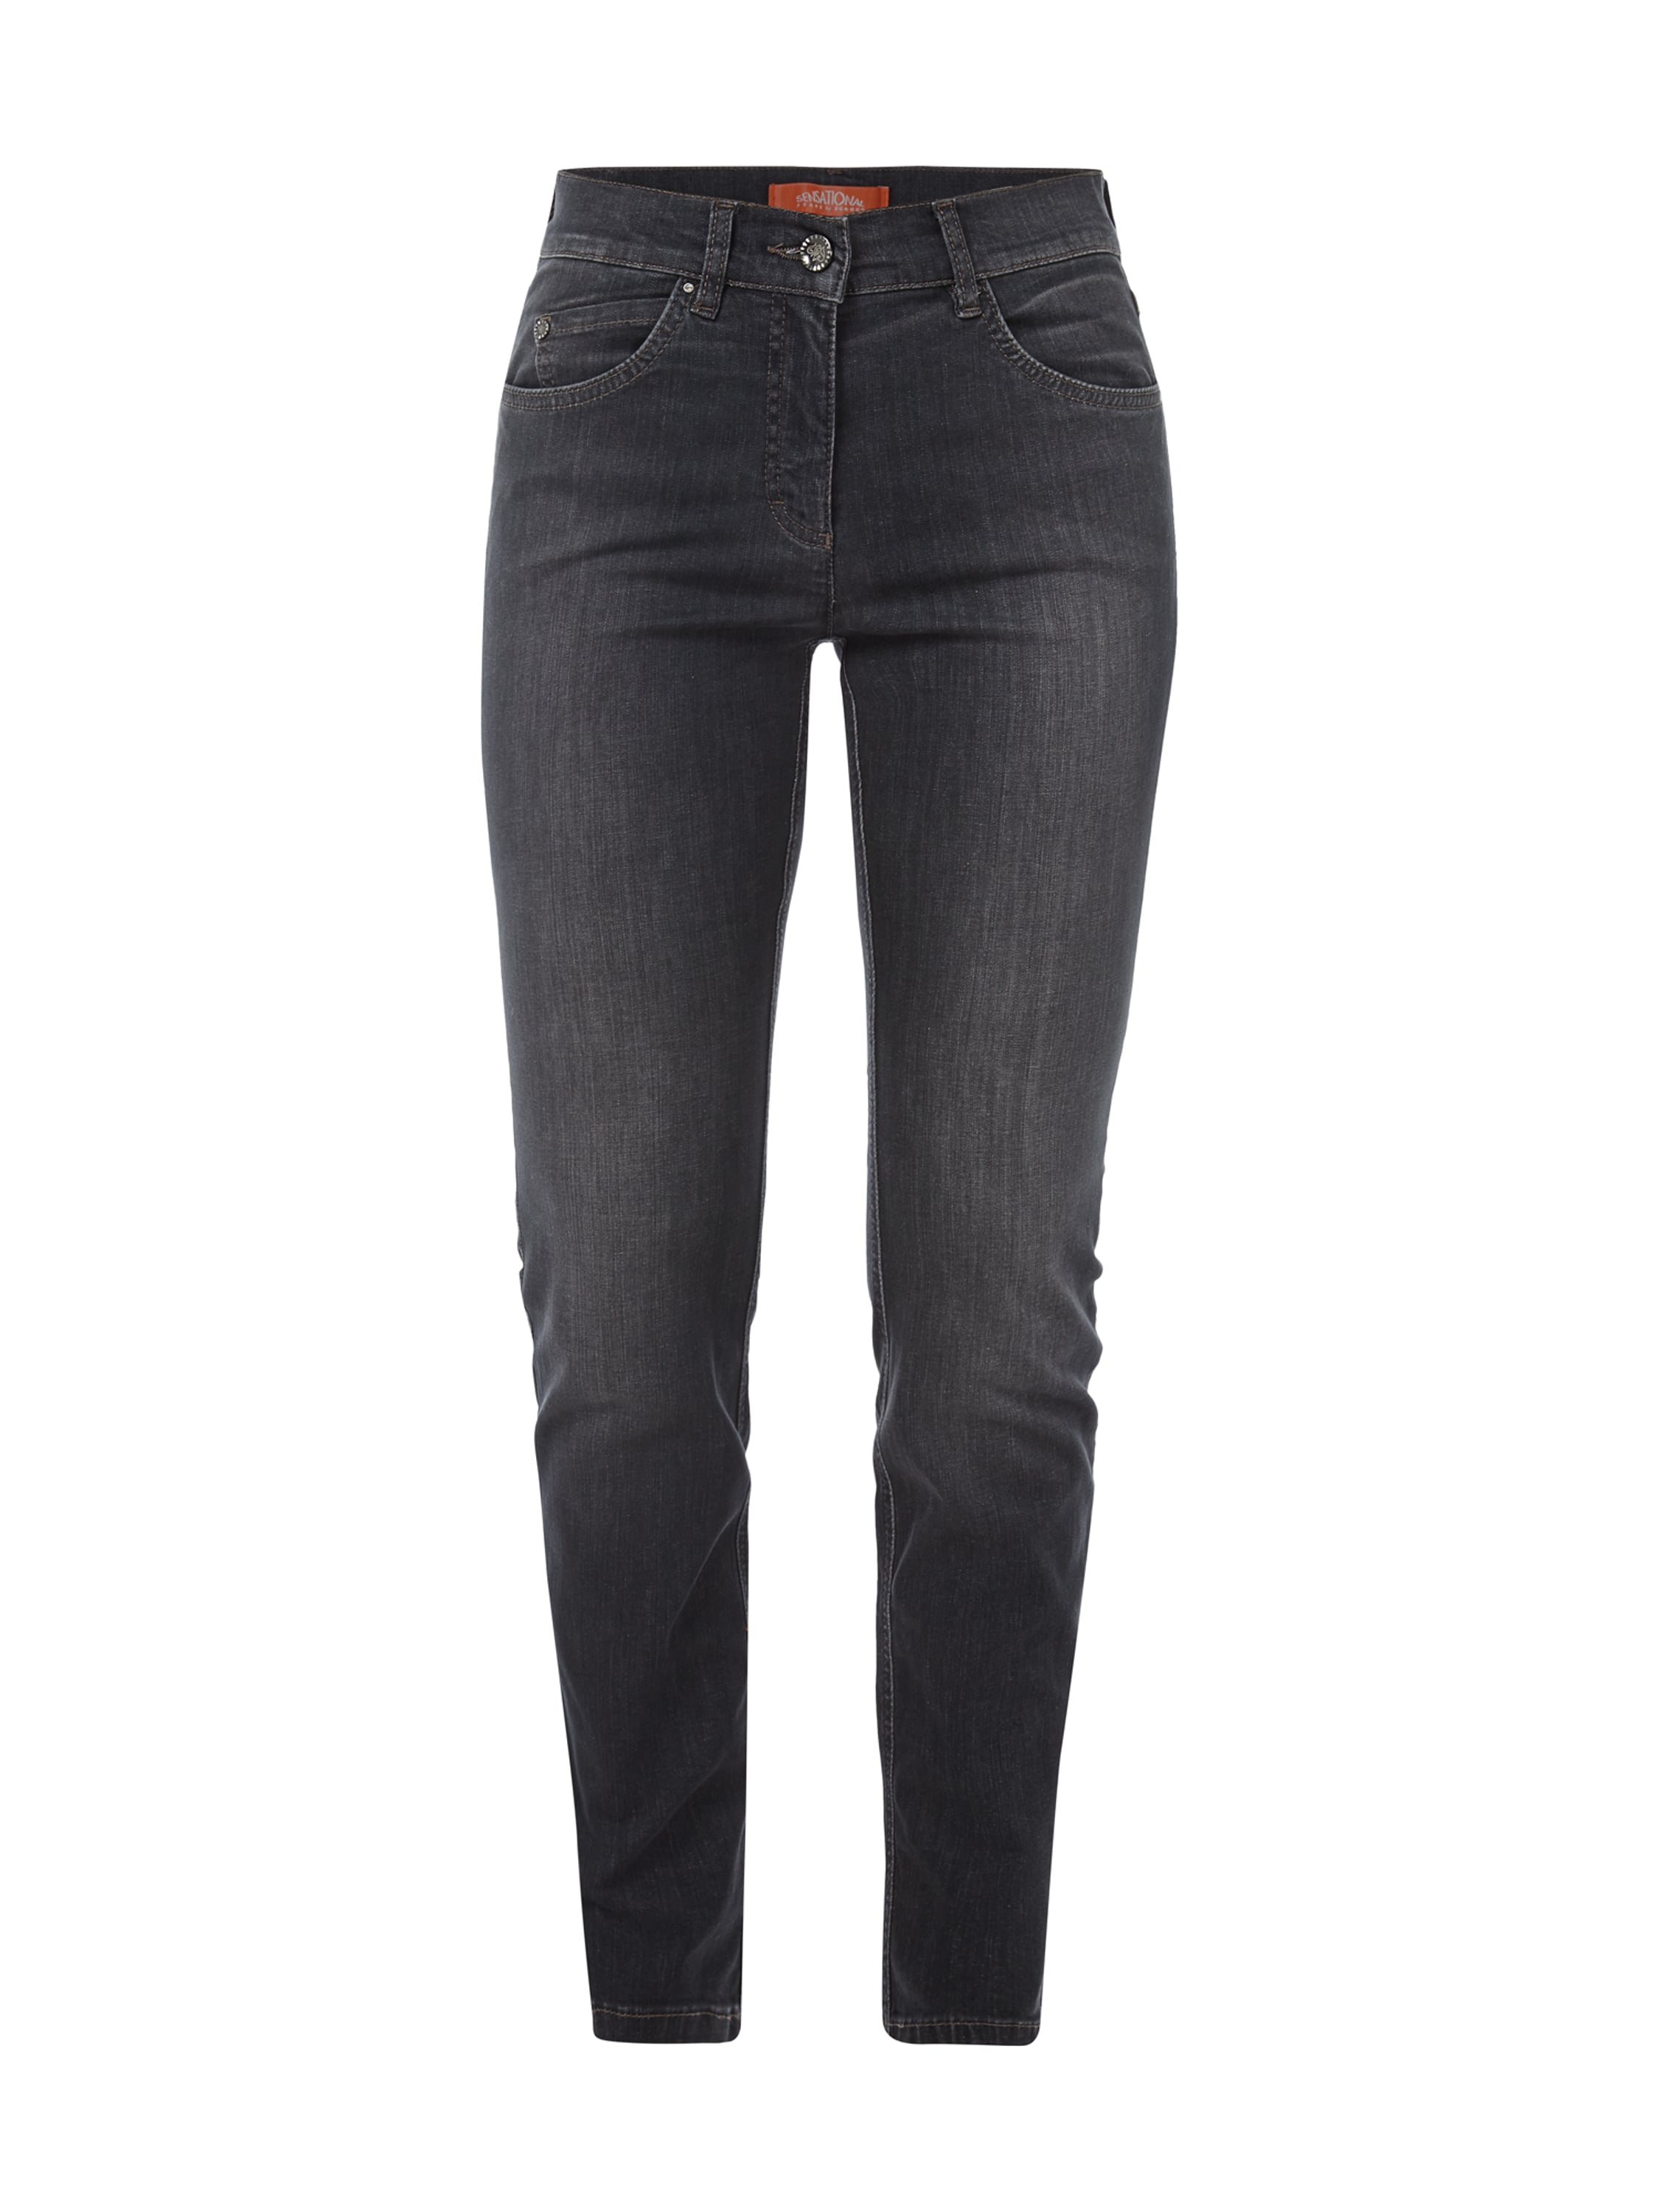 Buy Straight leg jeans from the Womens department at Debenhams. You'll find the widest range of Straight leg jeans products online and delivered to your door. Shop today!